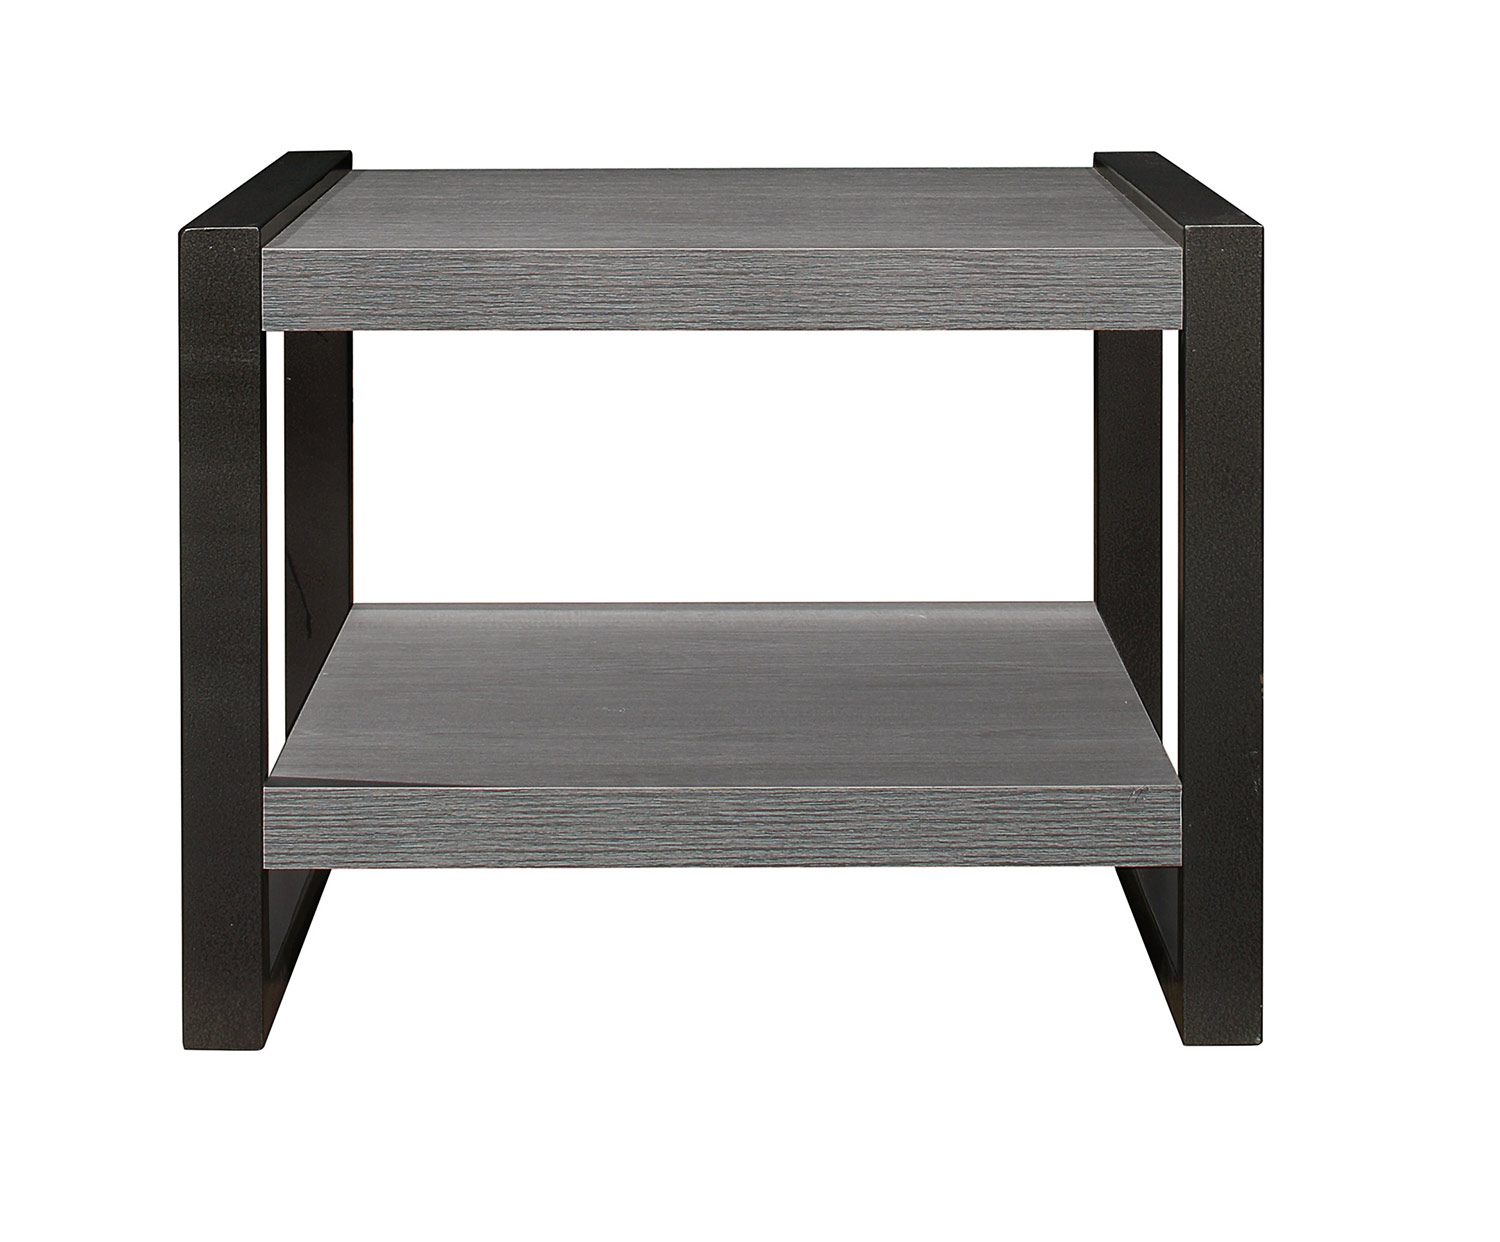 Homelegance Dogue End Table - Gunmetal Gray